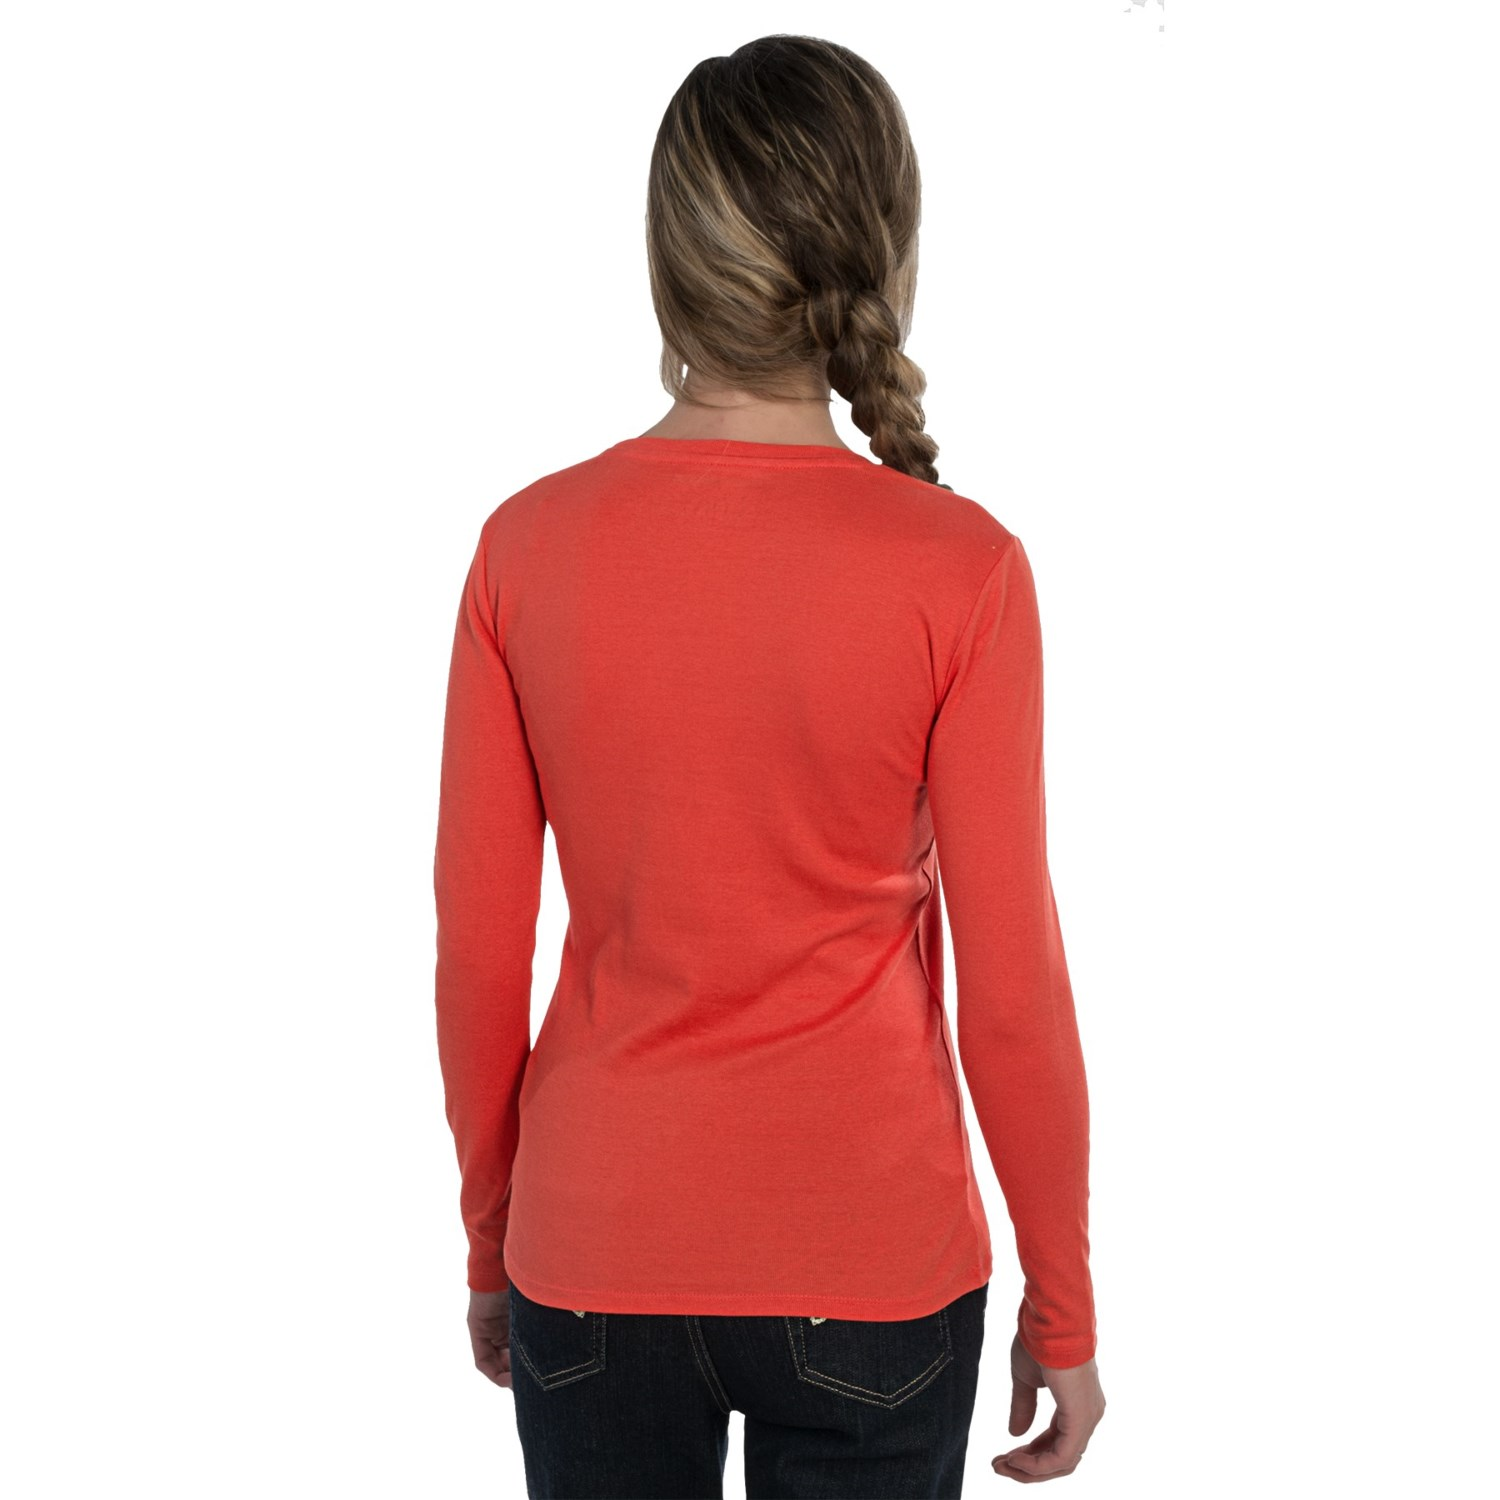 Cotton crew neck t shirt for women 6972y save 67 for Crew neck t shirt women